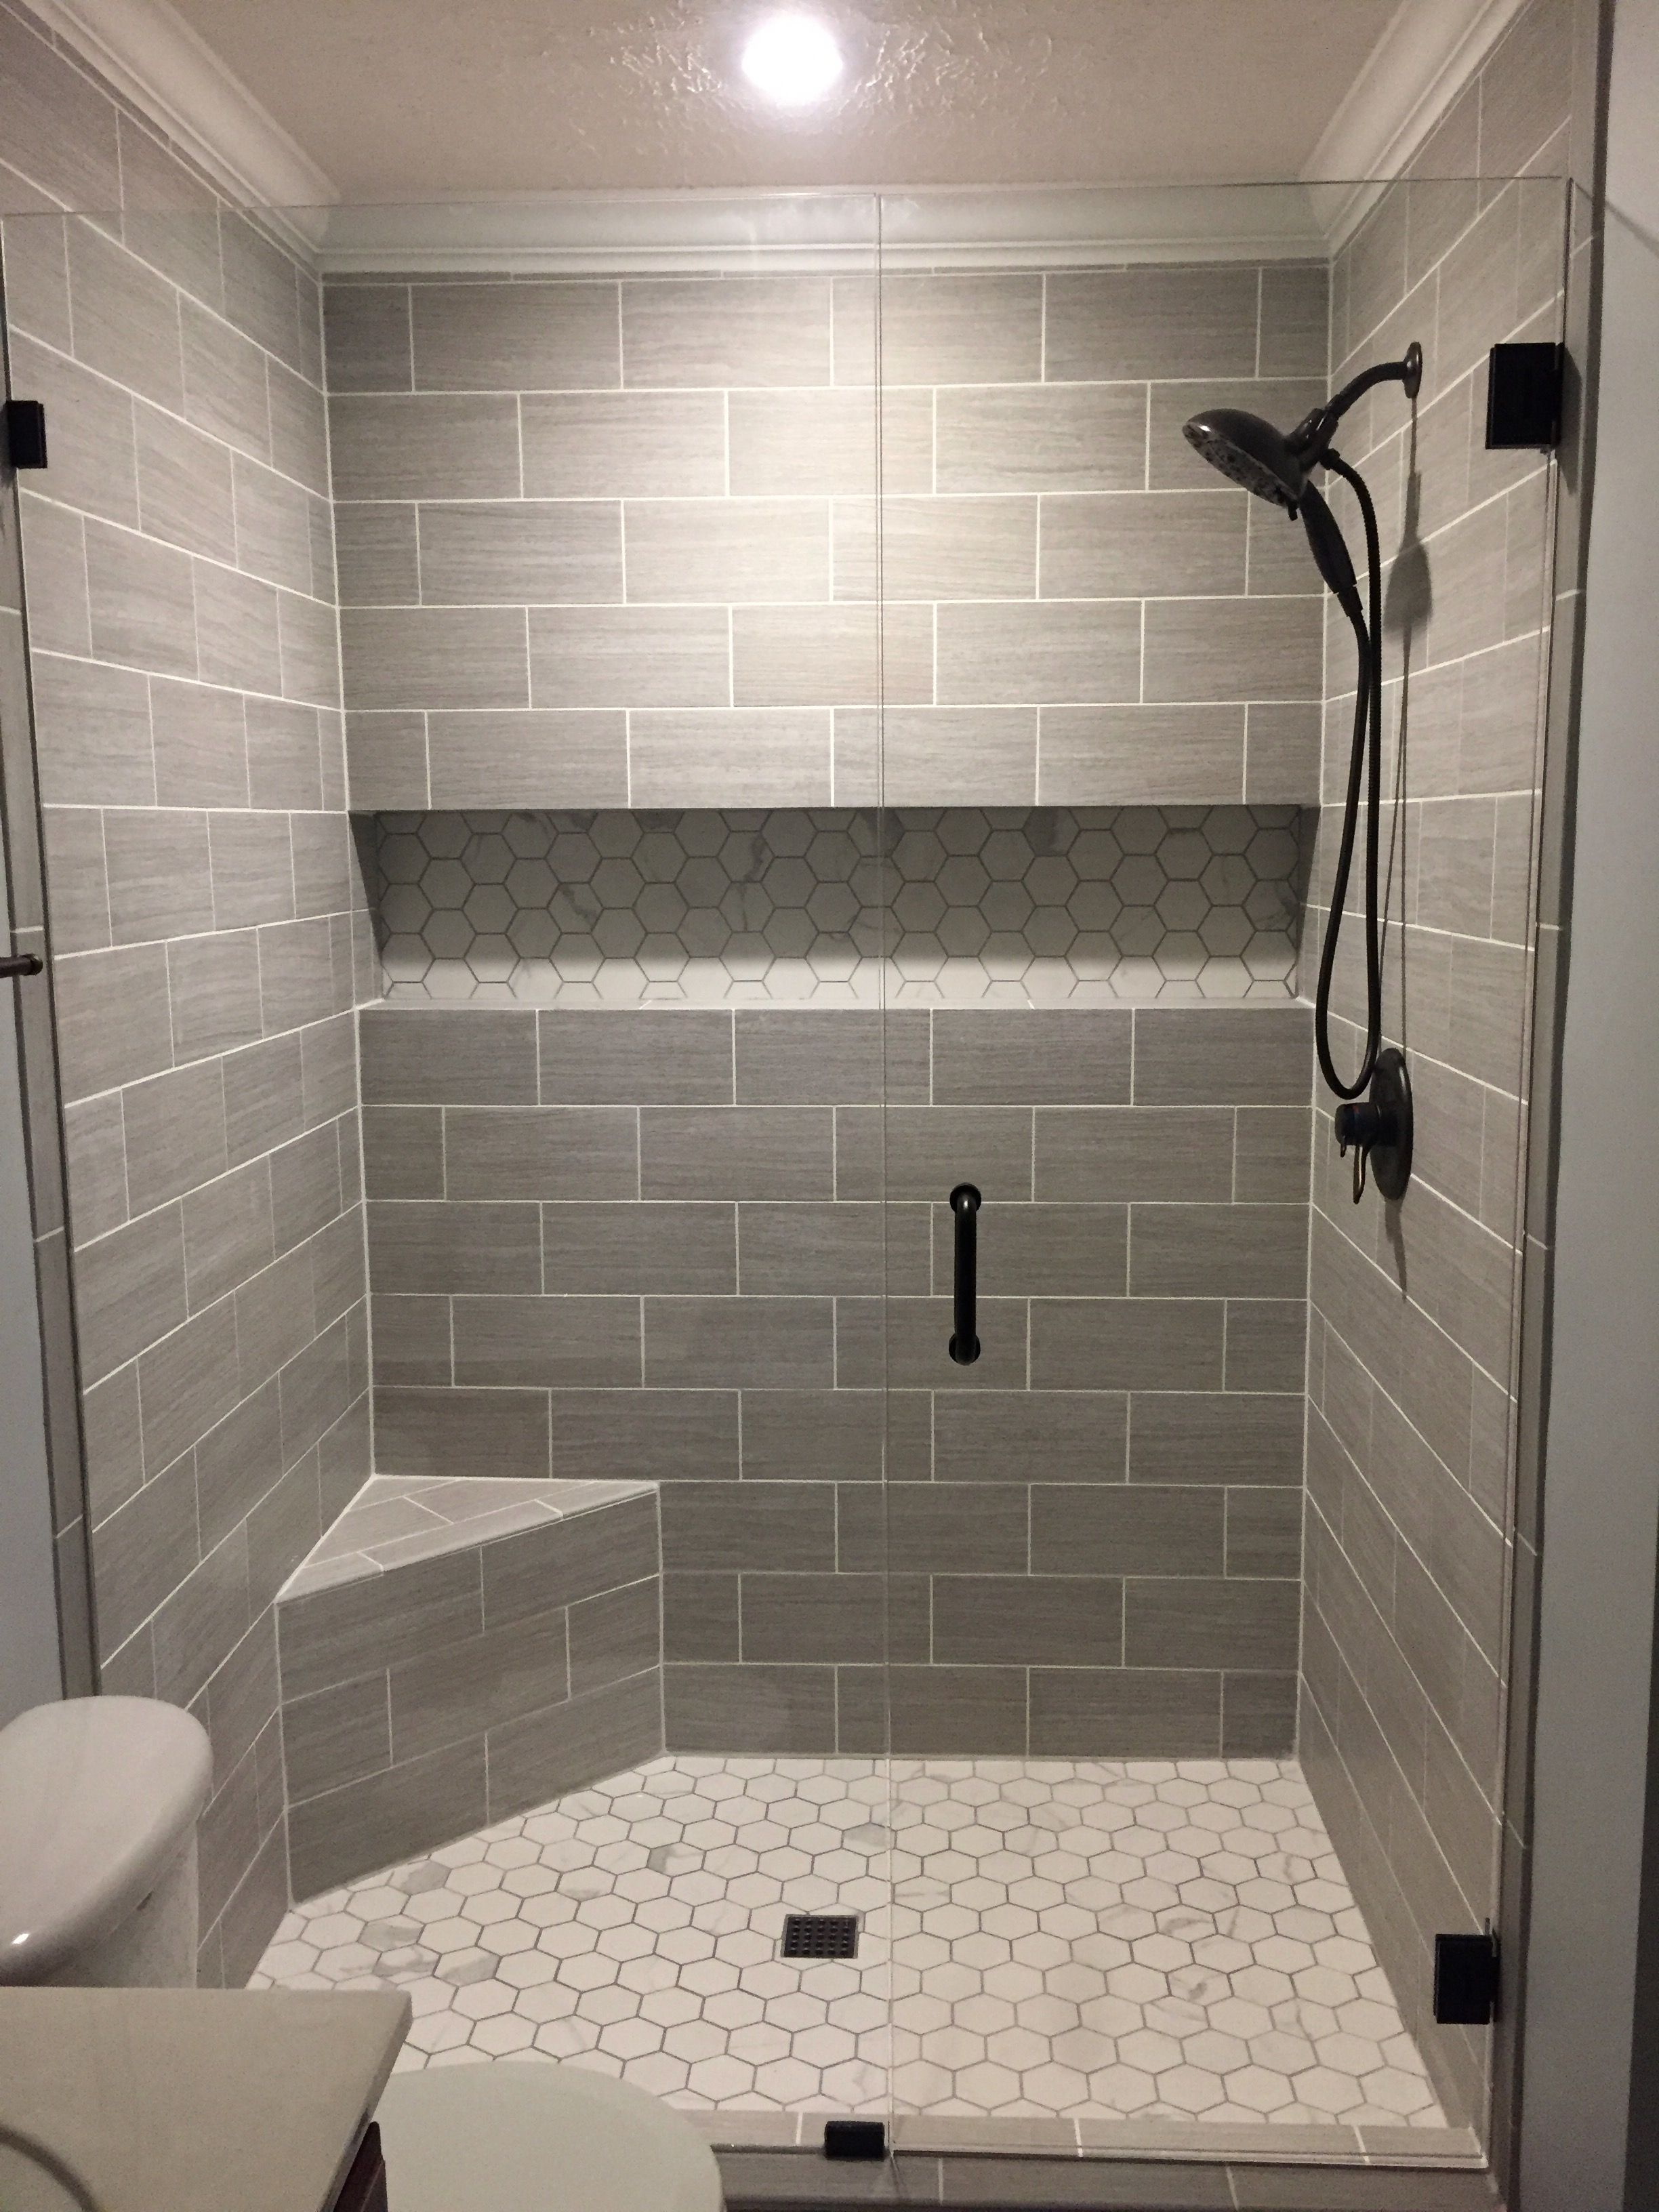 5 Phenomenal Bathroom Tile Combinations: Our Finished Walk-in Shower. Walls: Florim USA 6x24 (cut